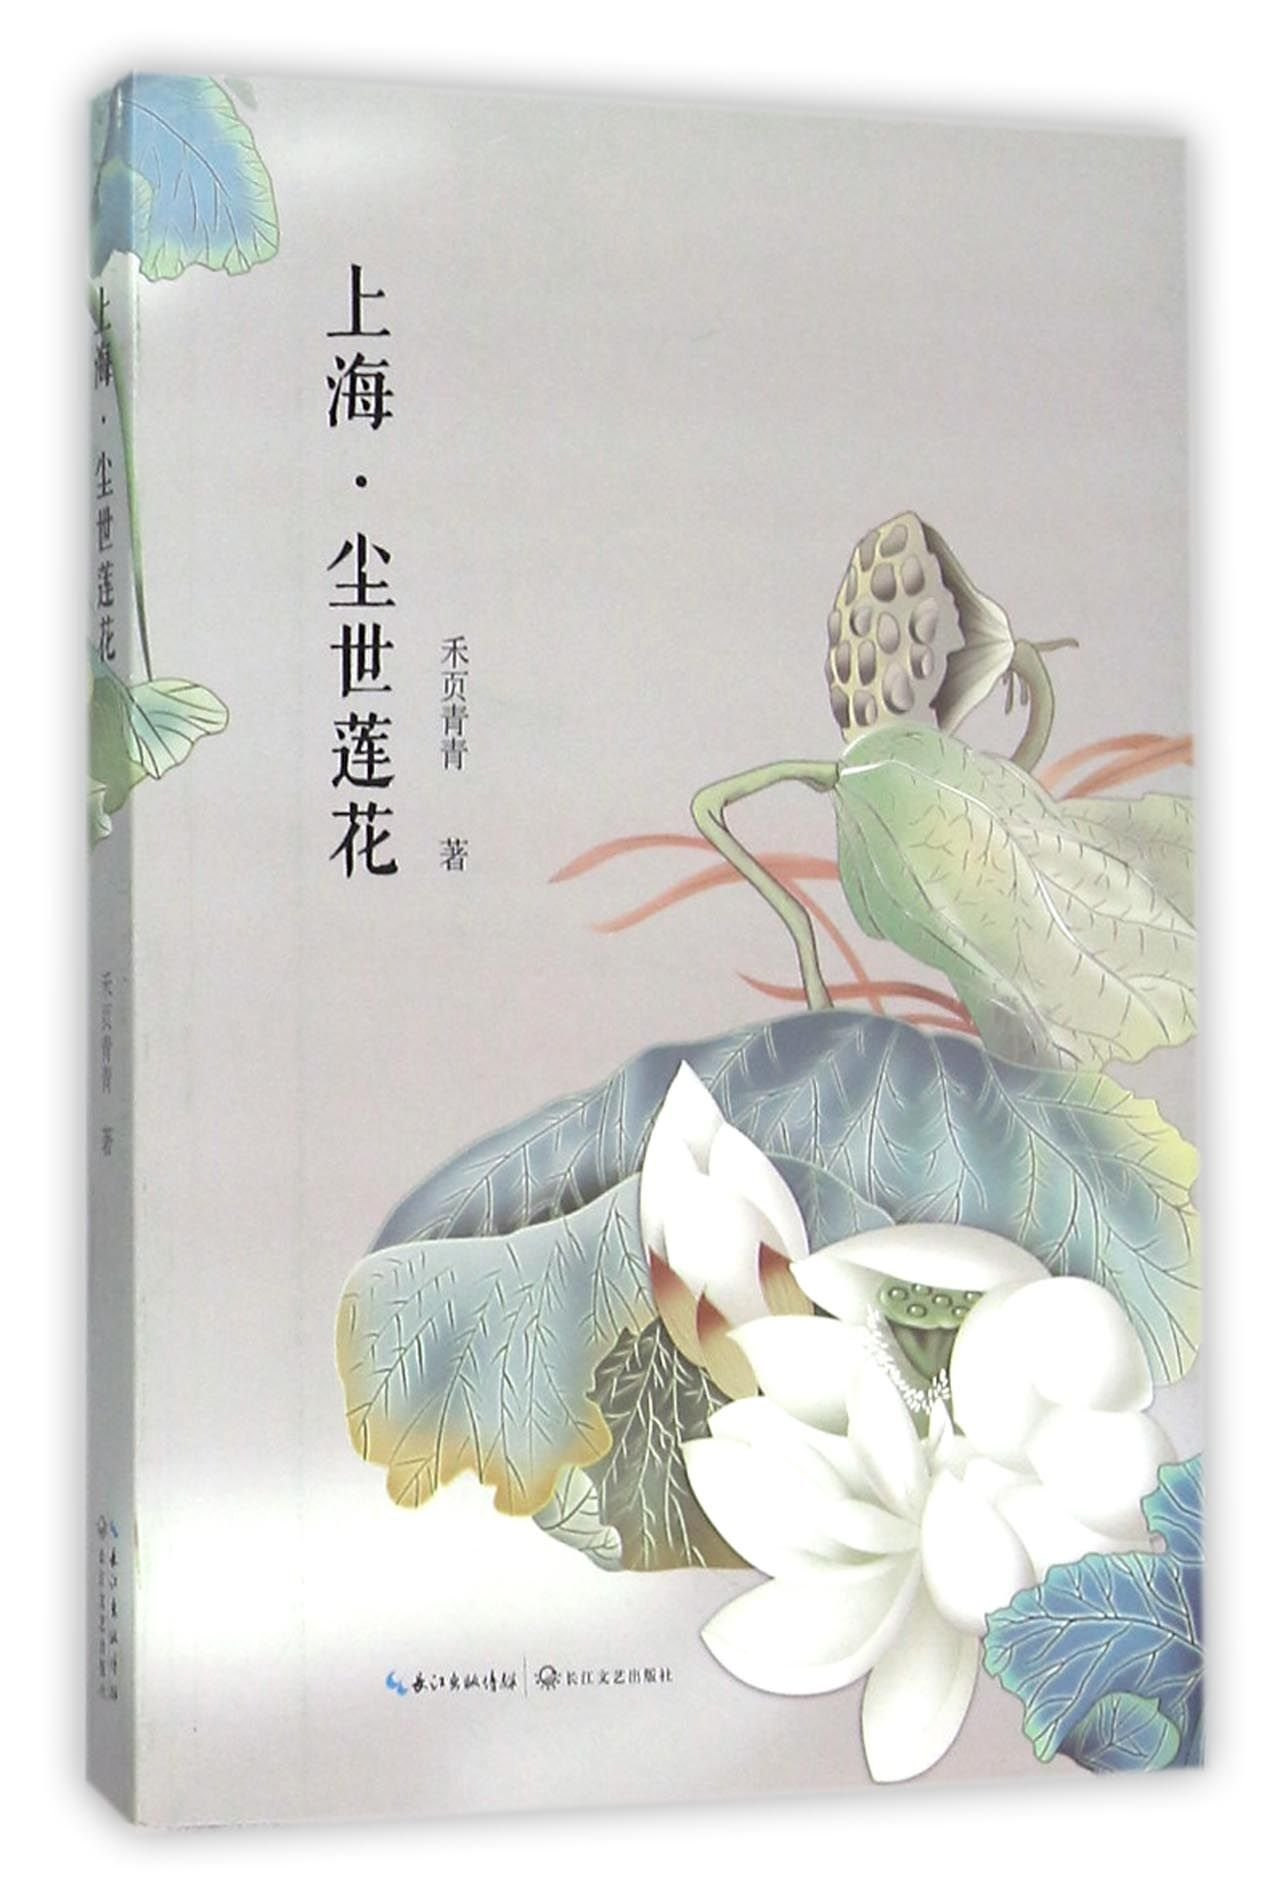 Lotus Flower in Shanghai (Chinese Edition)